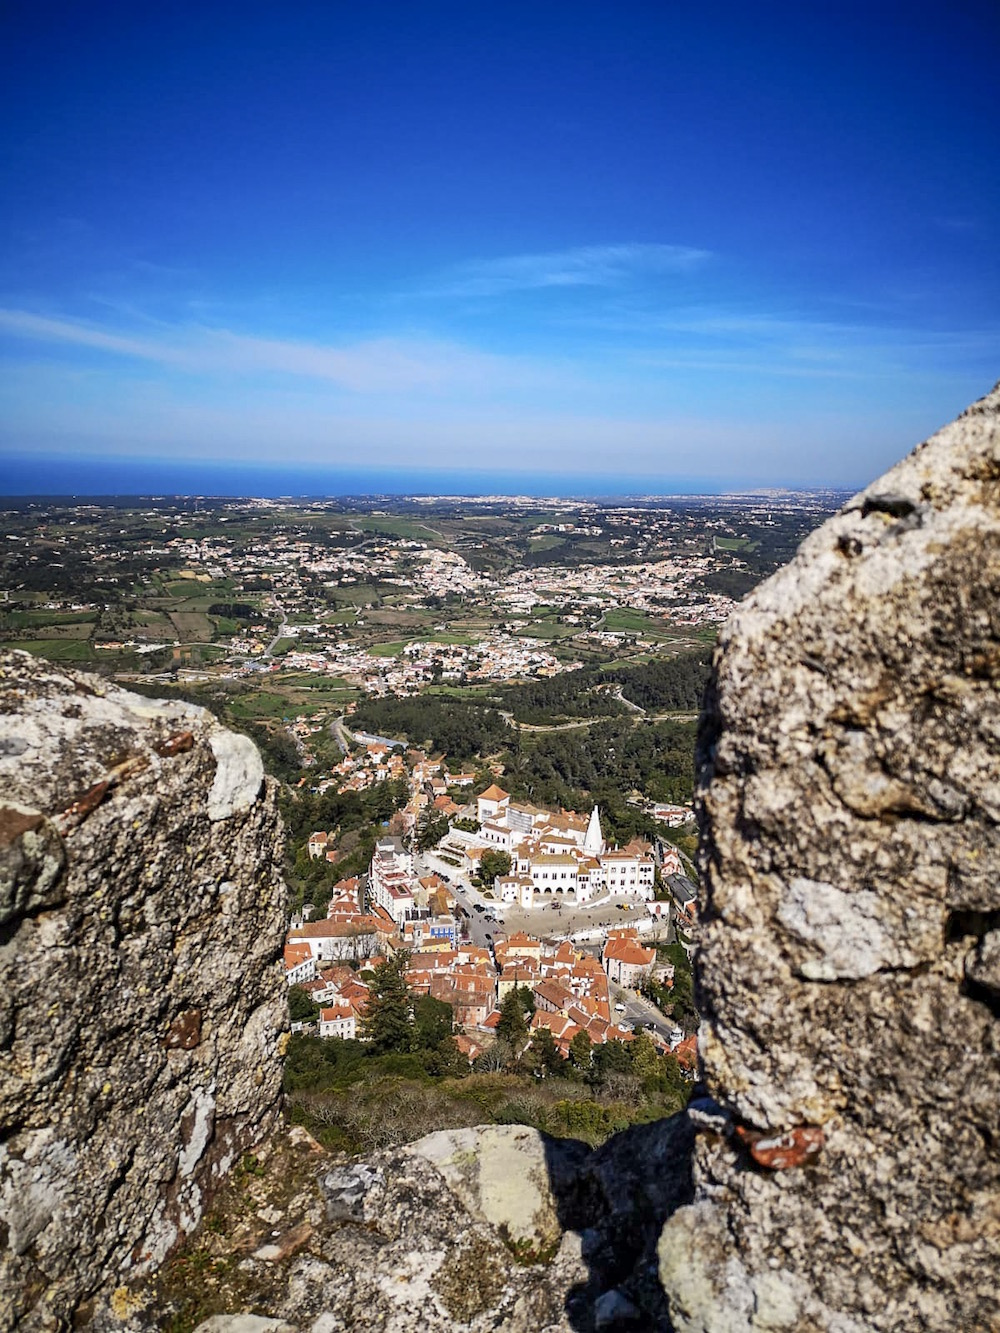 redhead-round-the-world-blog-blogger-portugal-europe-sintra-castle-moors-view.JPG